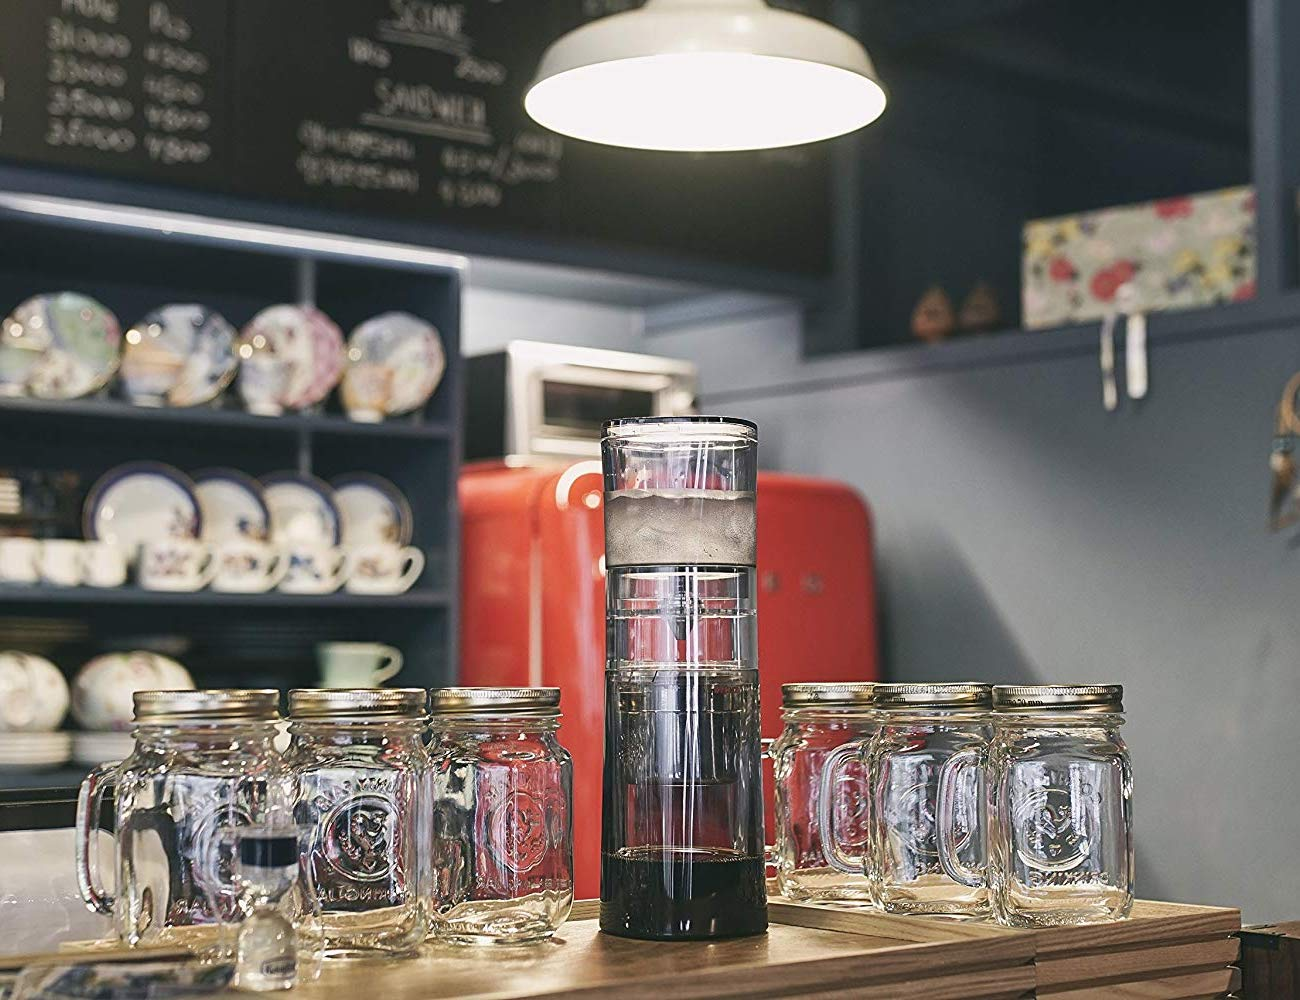 Brewki DKINZ Deluxe Cold Brew Coffee System let's you serve cold brew in your home